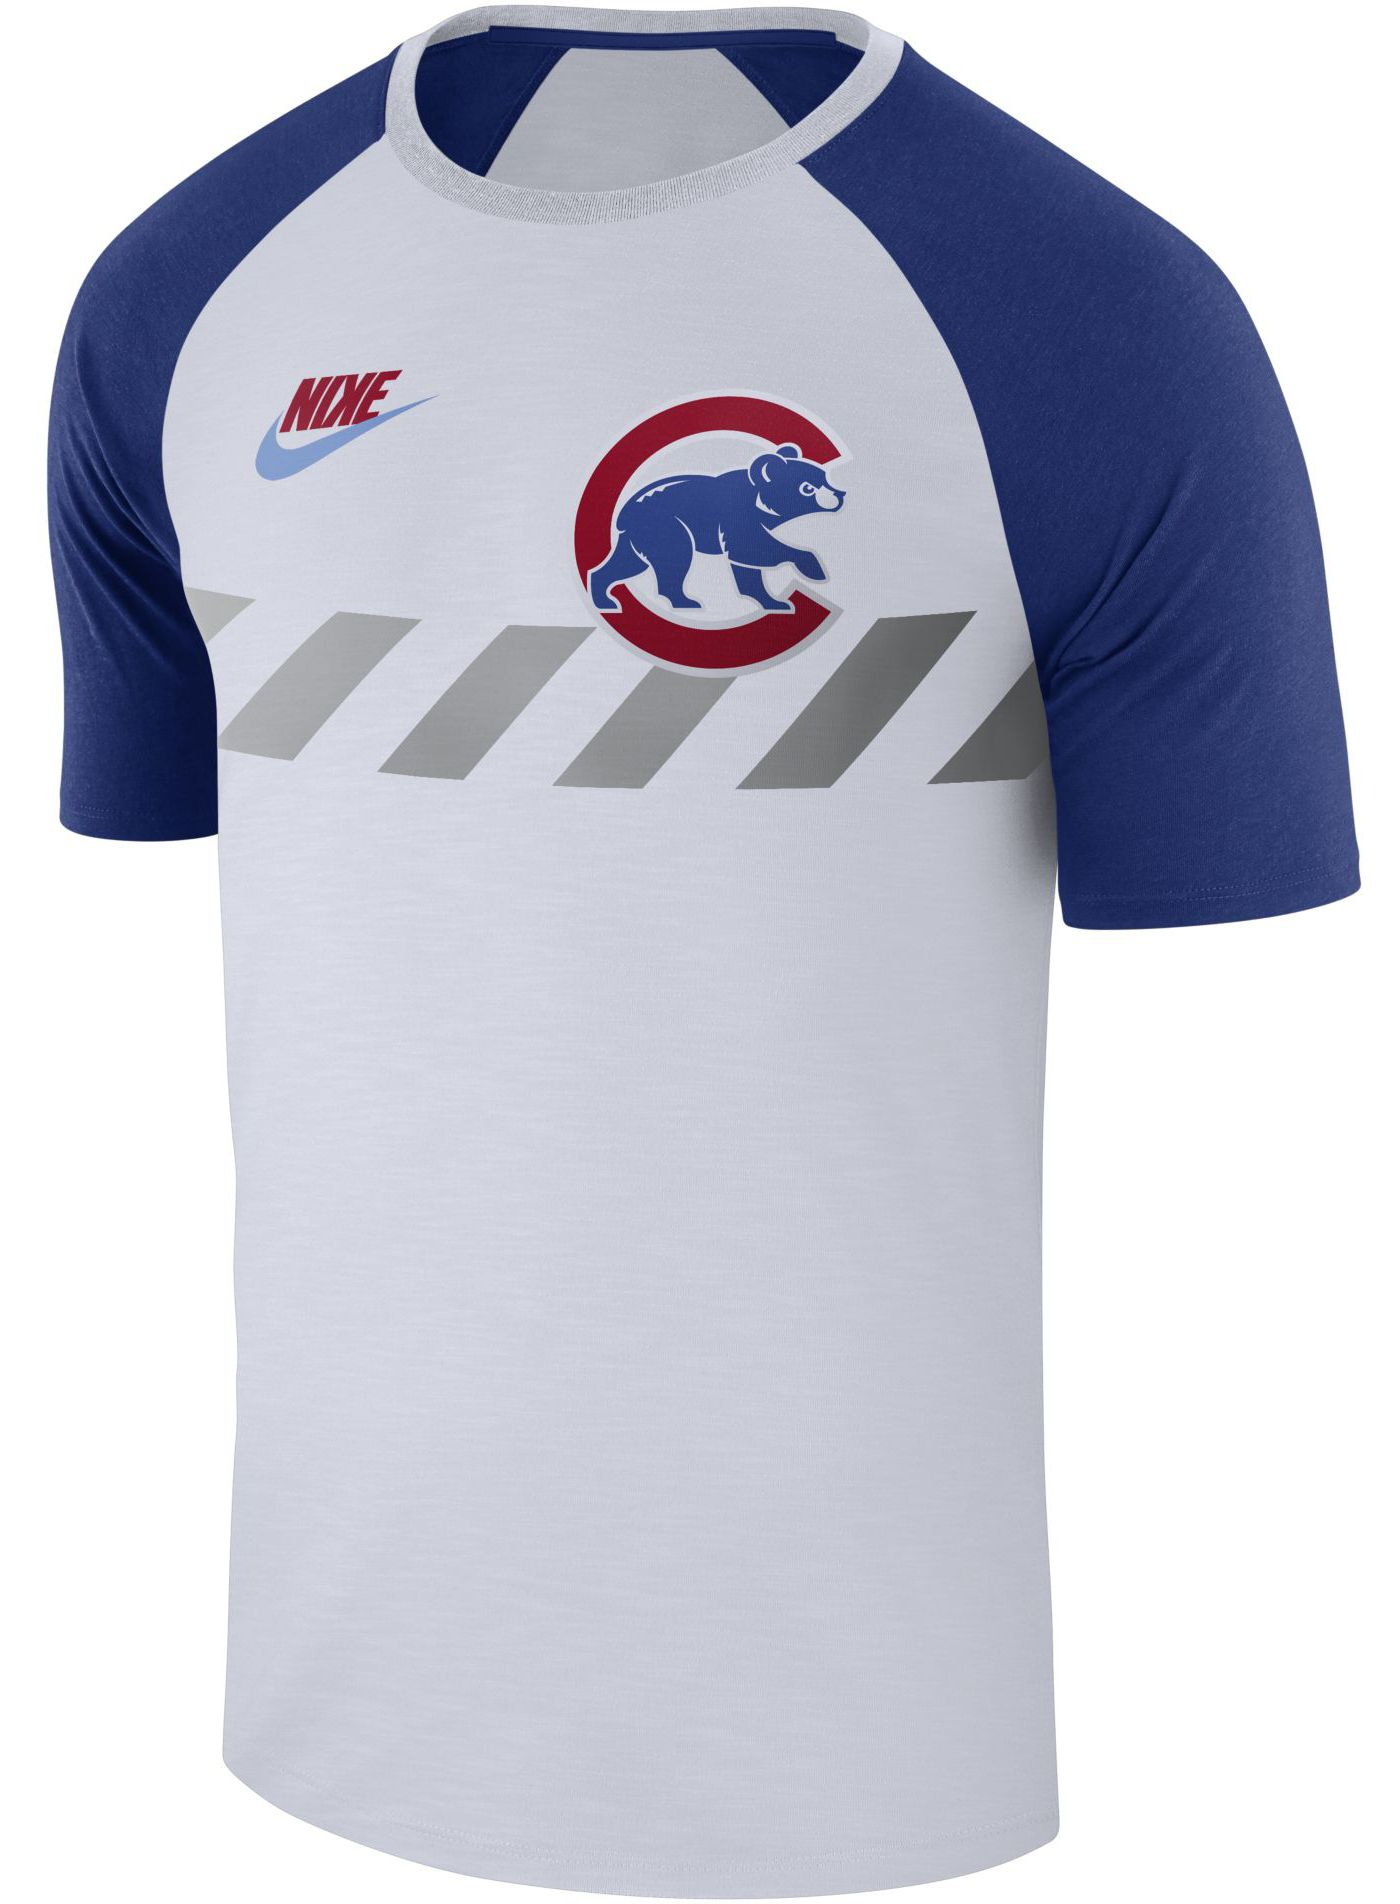 Nike Men's Chicago Cubs Dri-FIT Raglan T-Shirt